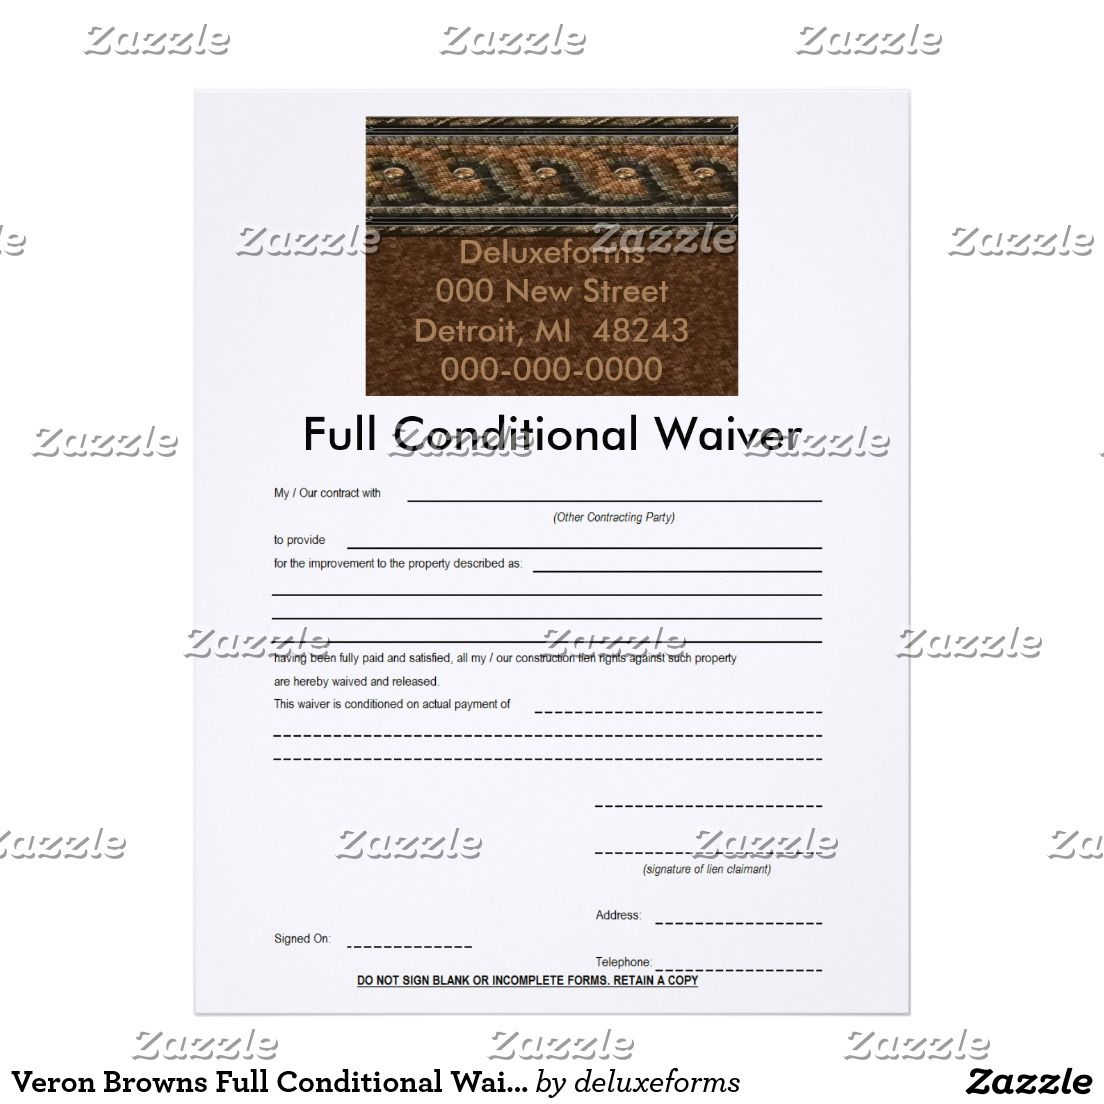 Veron Browns Full Conditional Waiver Letterhead  Products